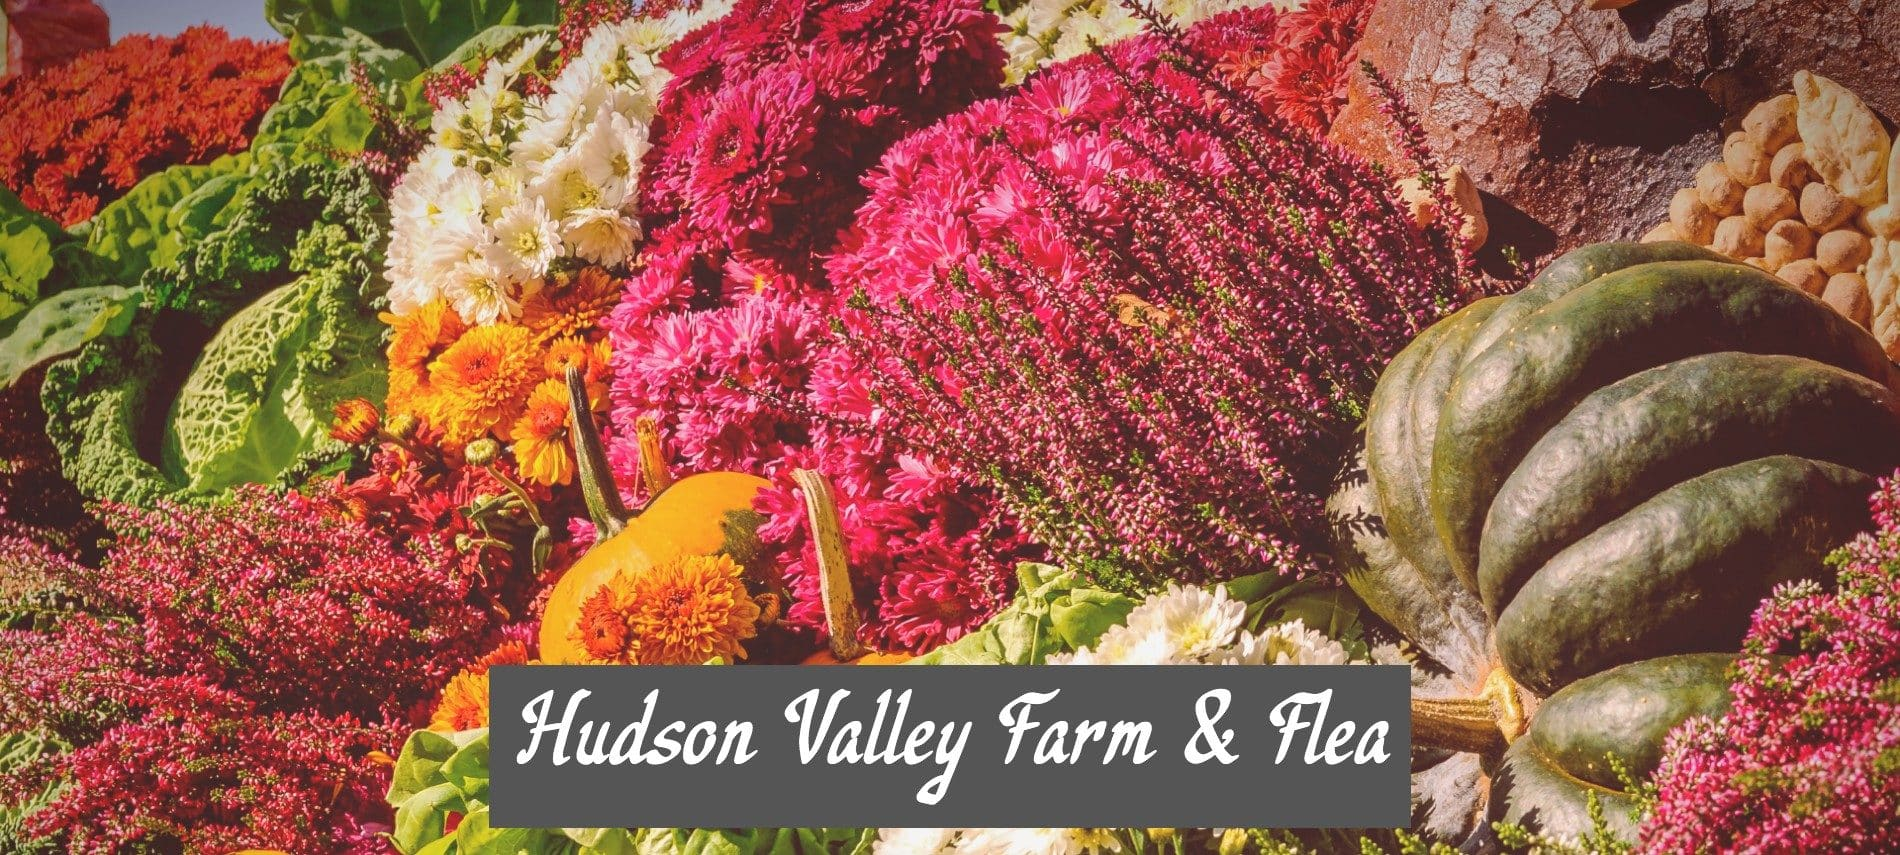 """Market table full of colorful flowers and vegetables and text overlay """"Hudson Valley Farm & Flea"""""""